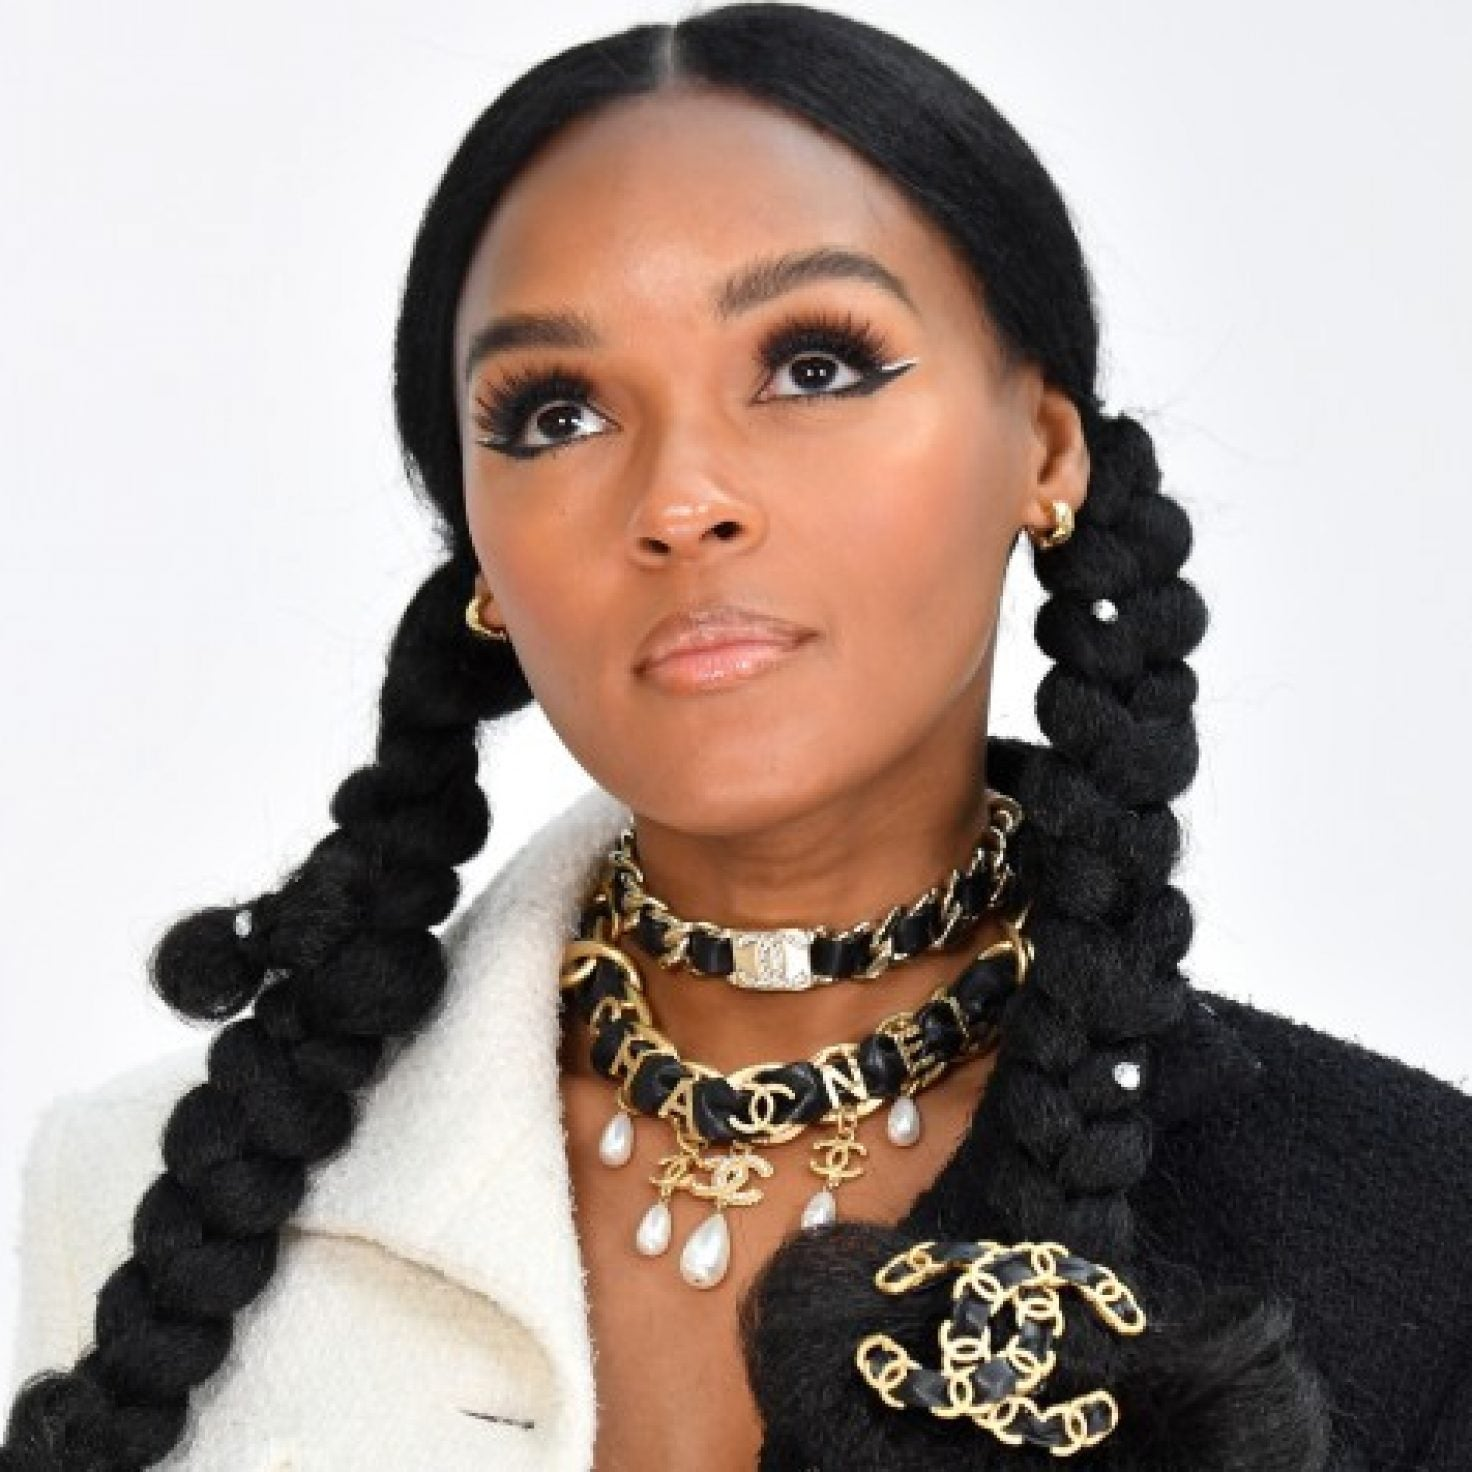 Janelle Monáe, Adut Akech, Mya And Other Celebrity Beauty Slays Of The Week